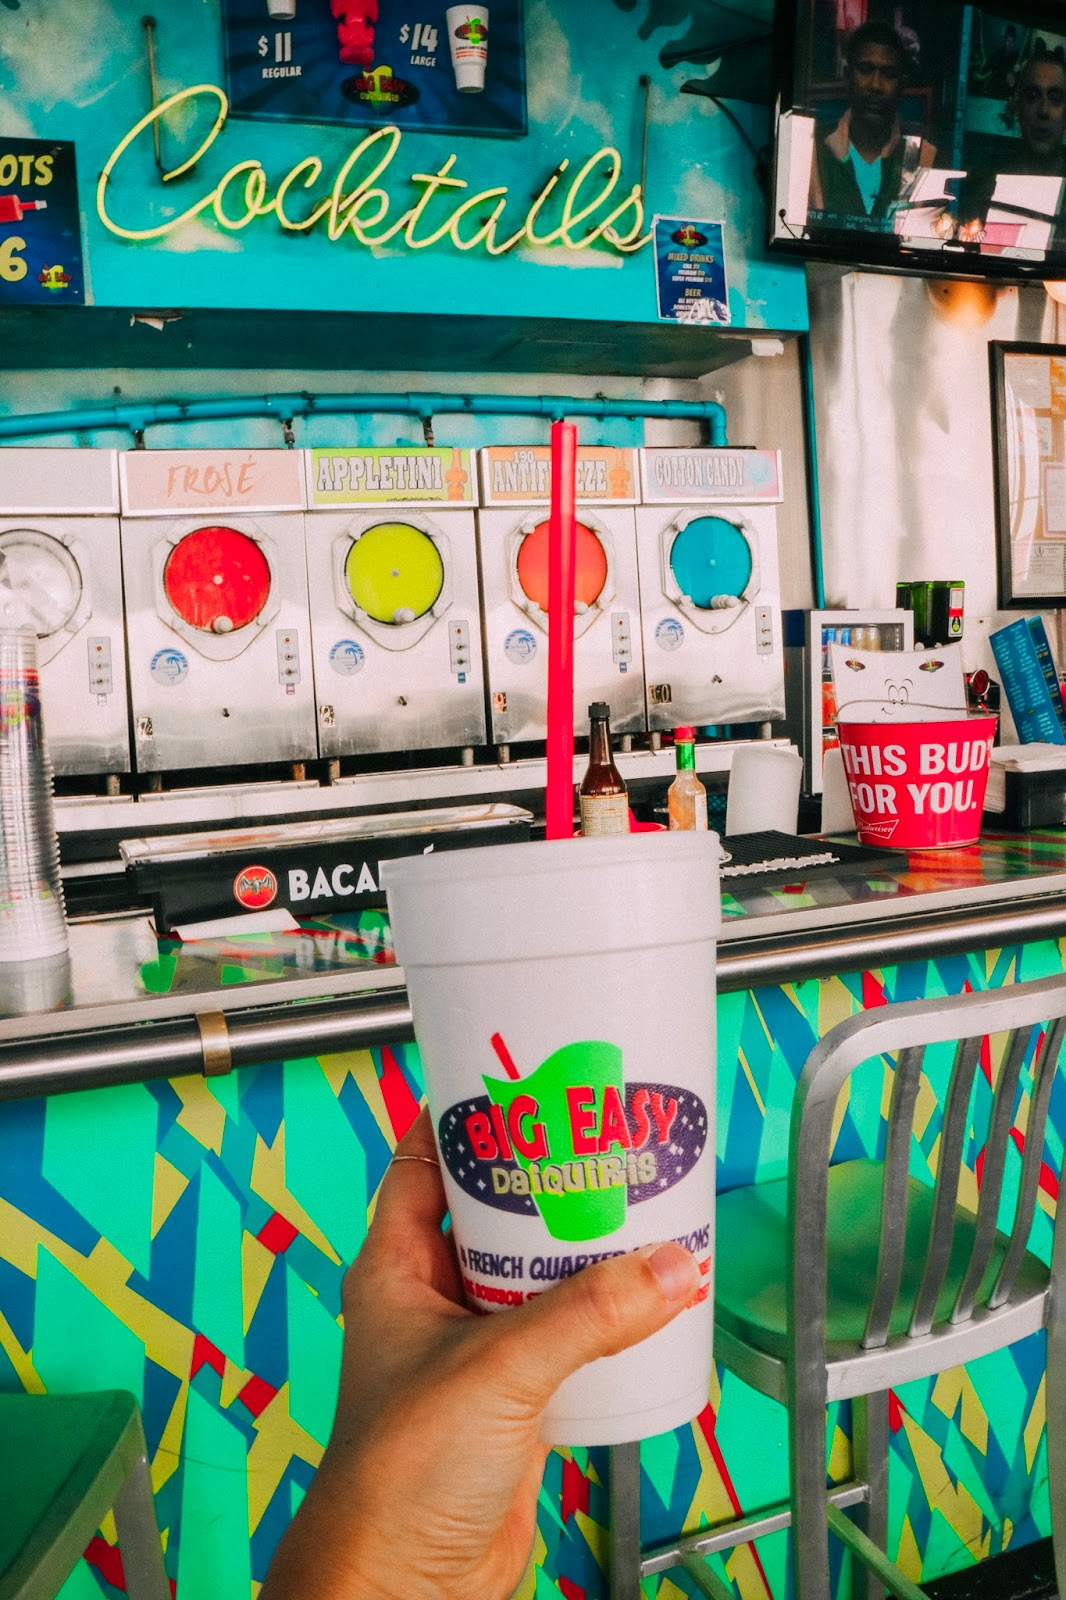 Frozen daiquiris from Big Easy Daiquiris in New Orleans